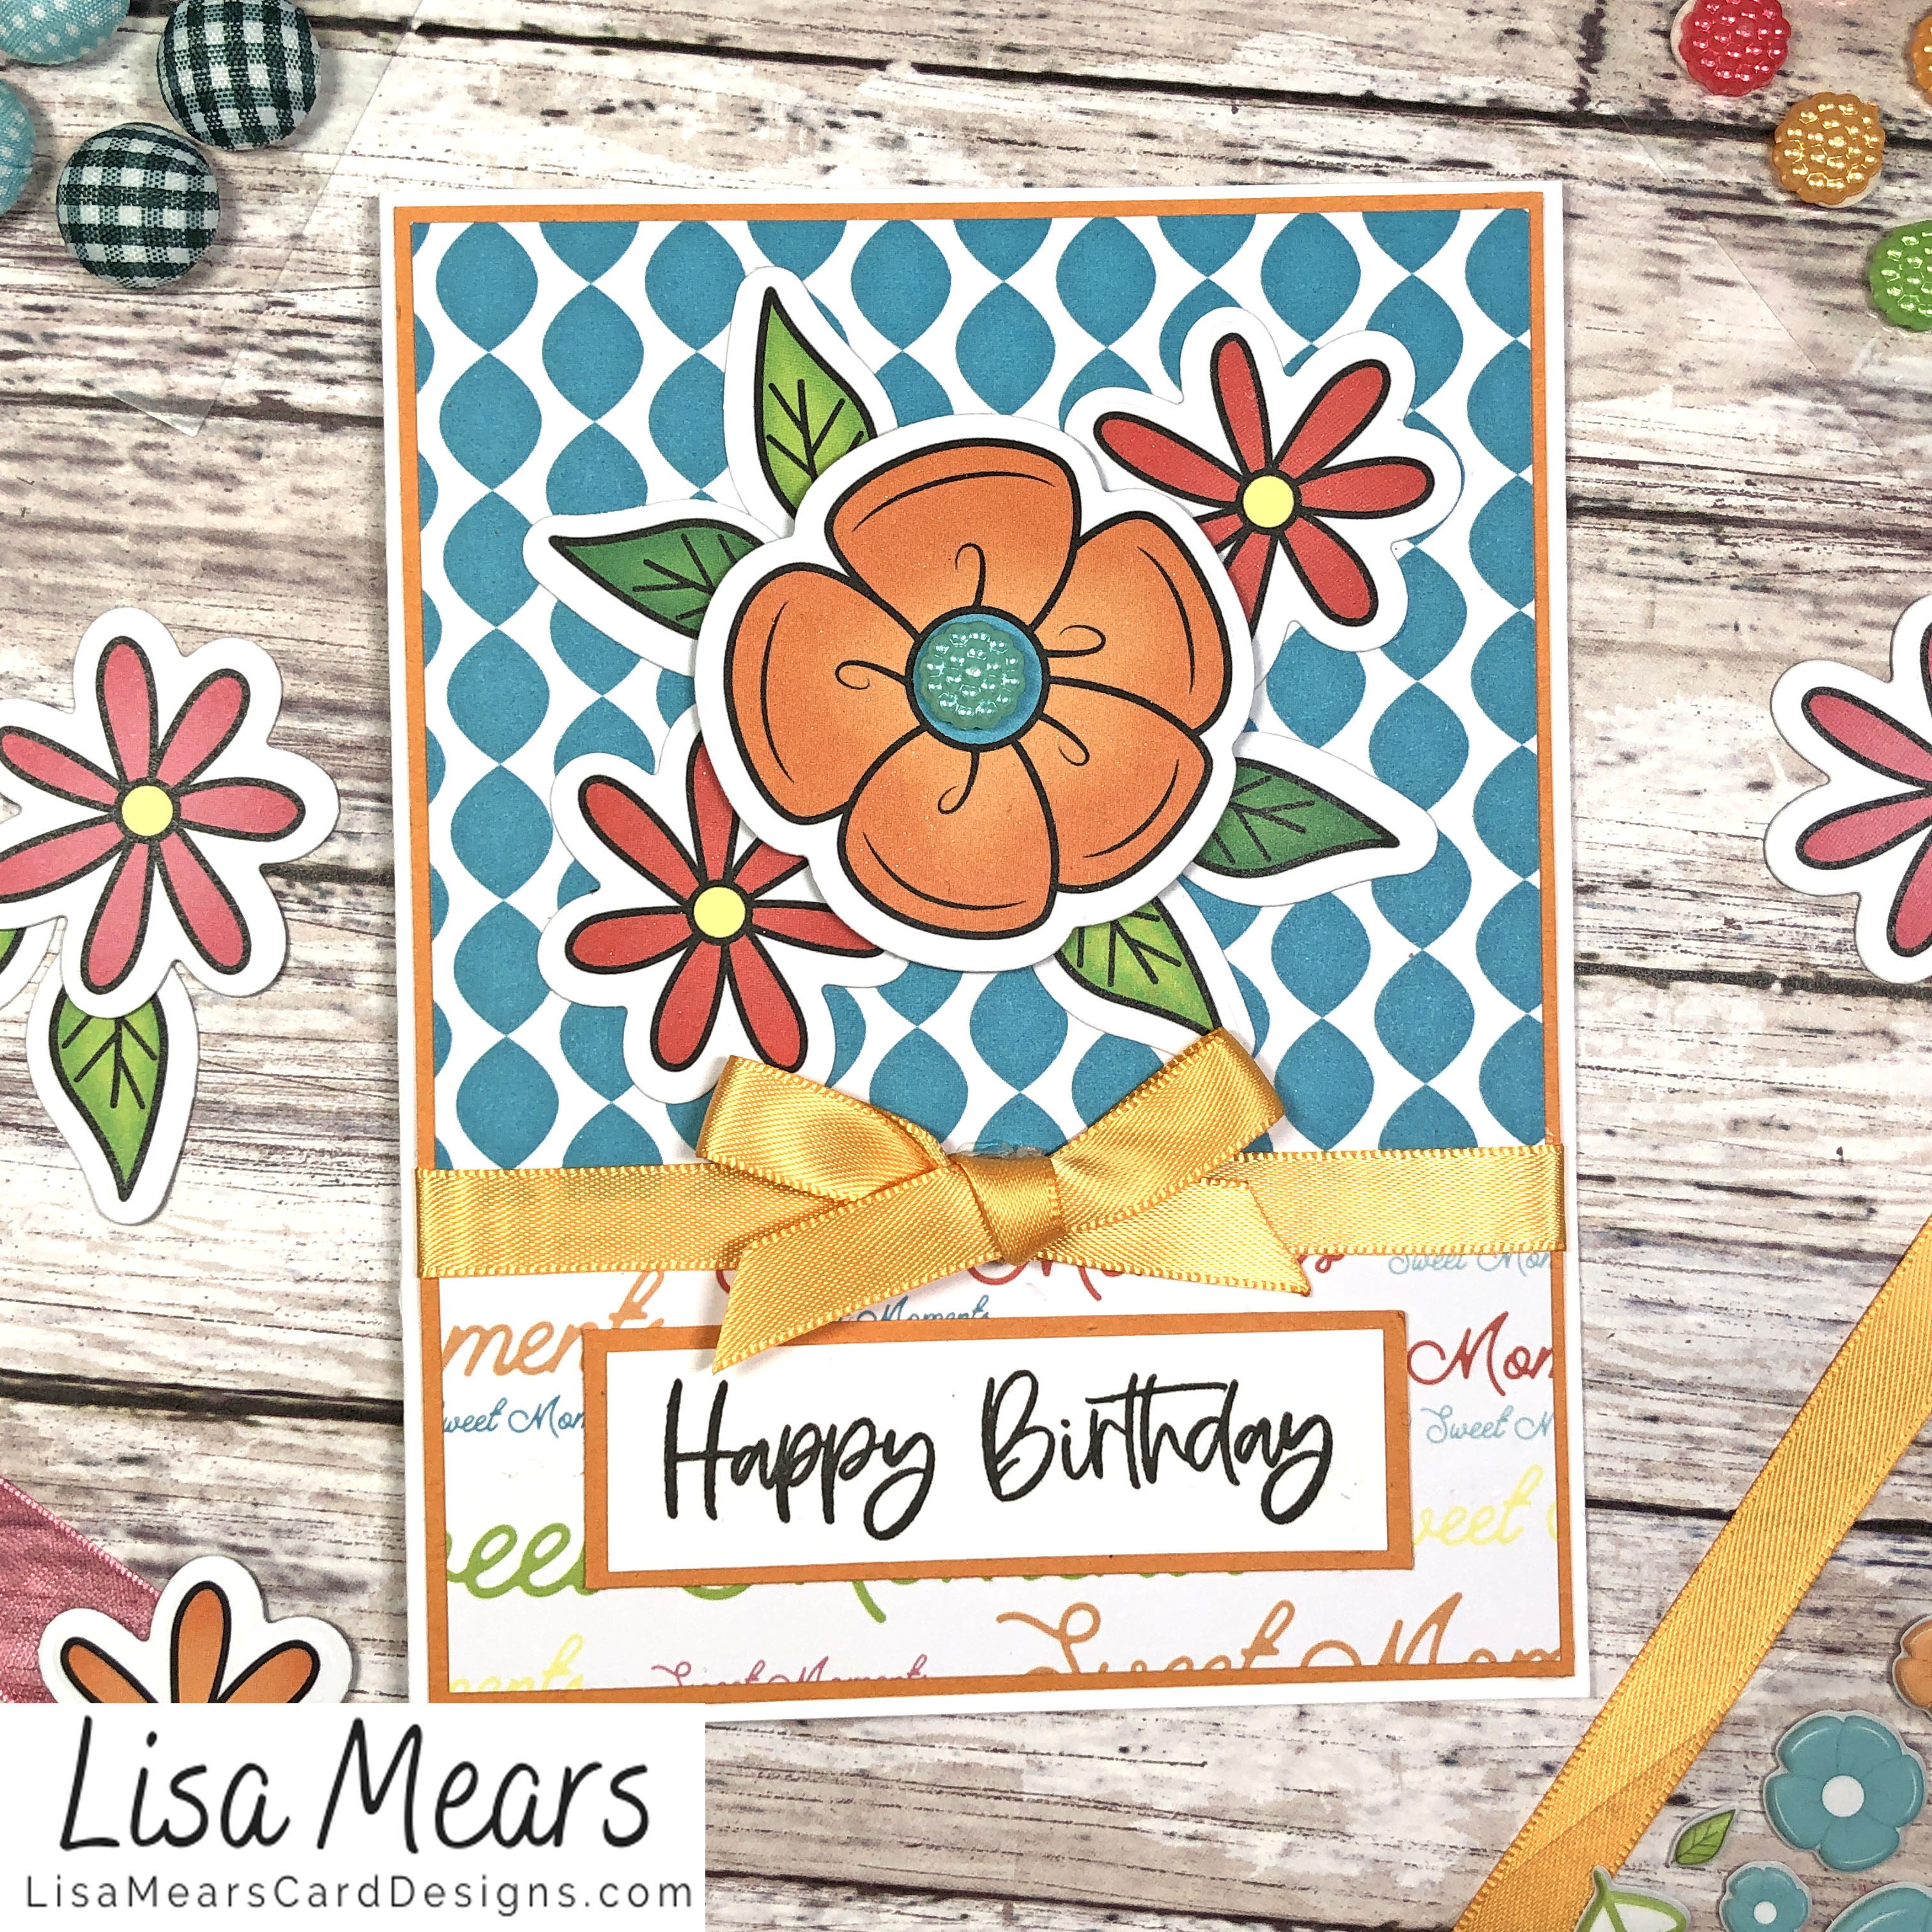 The Stamps of Life March 2021 Card Kit - Flower Card - Card 8